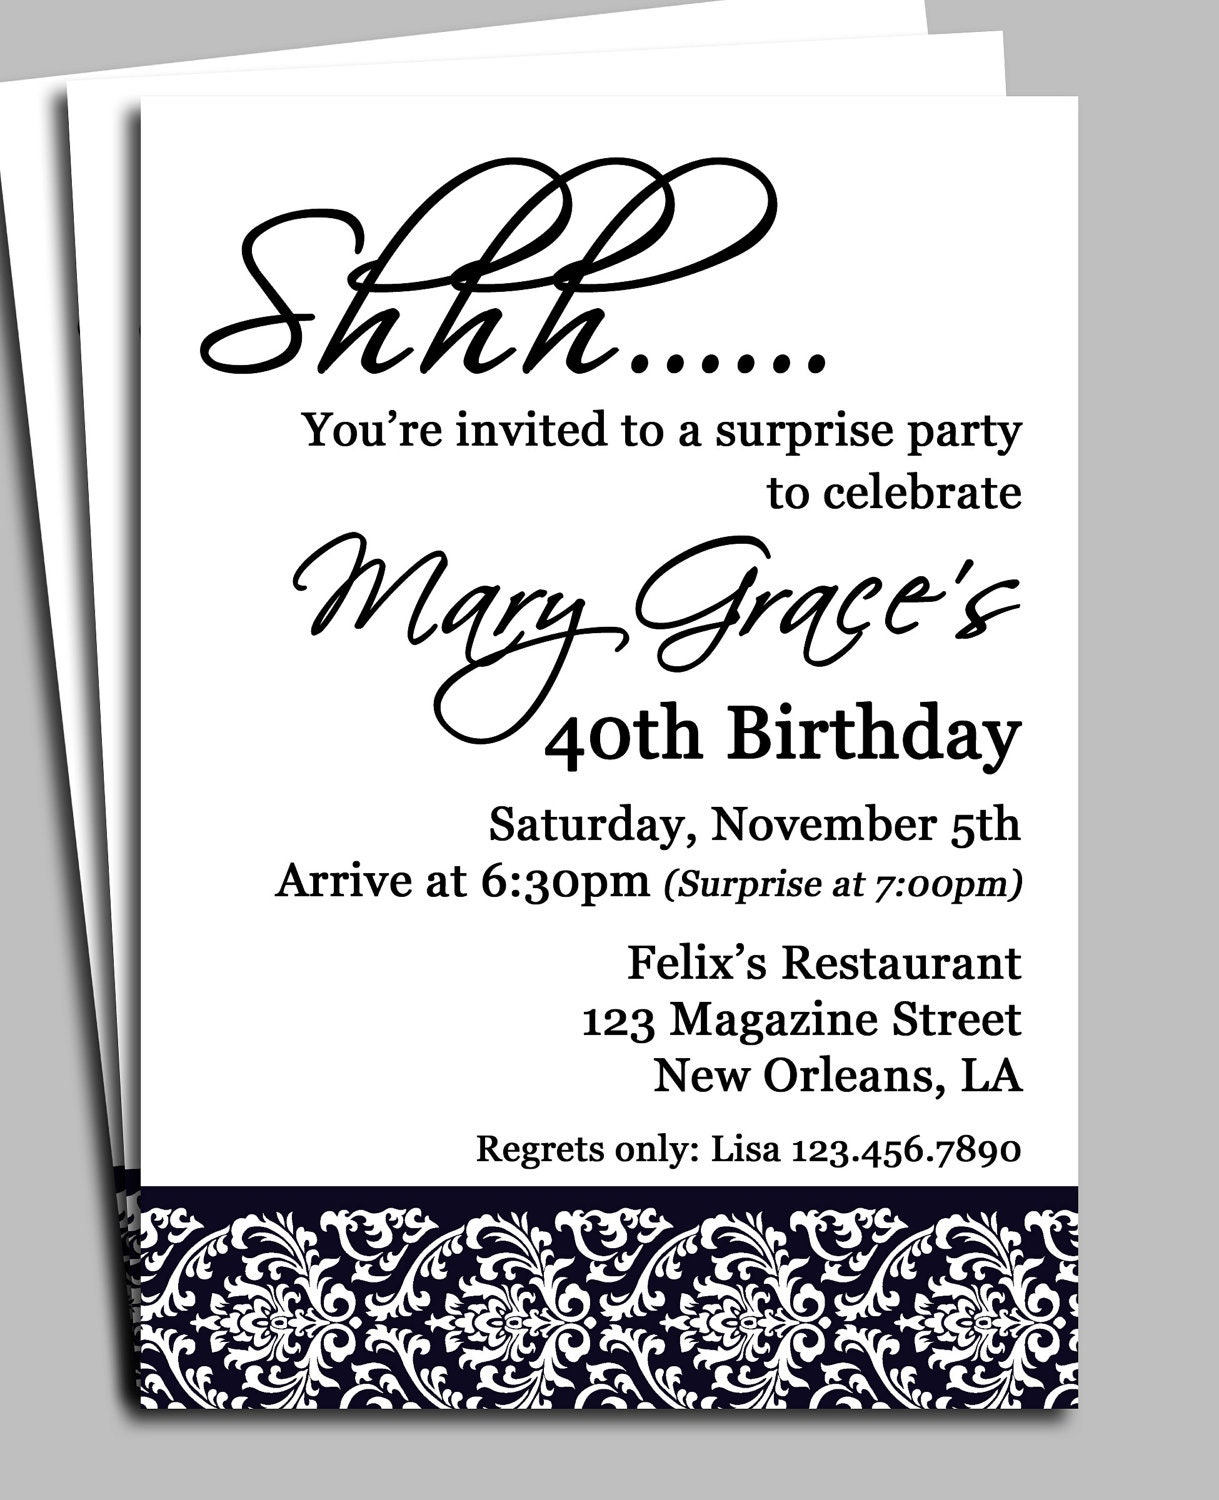 Surprise party invitation wording samples stopboris Choice Image